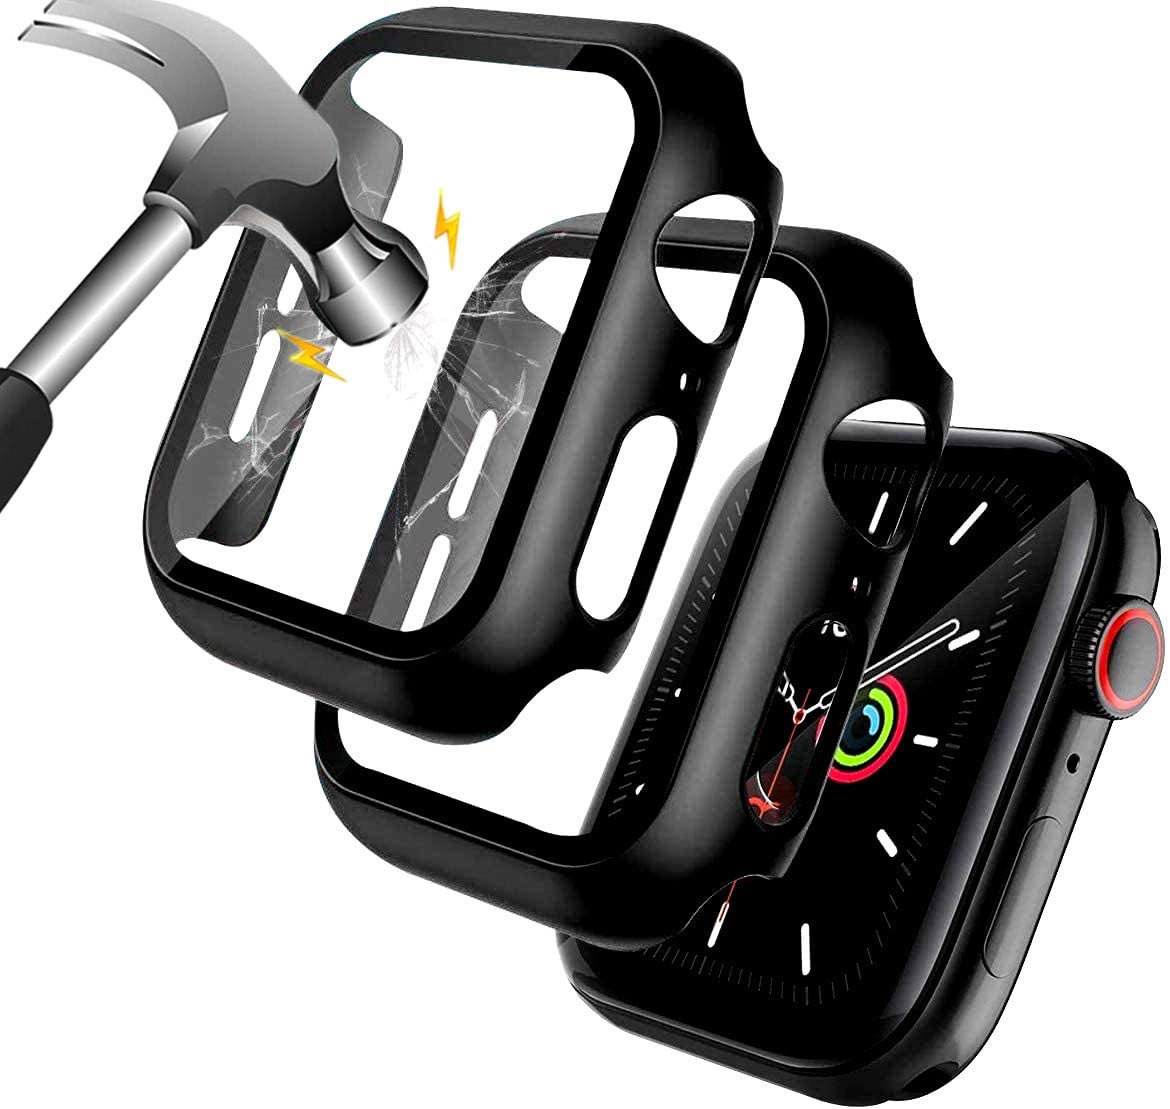 [2 Pack] Screen Protector Compatible for Apple Watch Series 6/5/4/SE 44mm, EzonEZoff Black Case with Tempered Glass Screen Protector, Full Protection Bubble-Free Cover for iWatch 44mm Series 6/5/4/SE